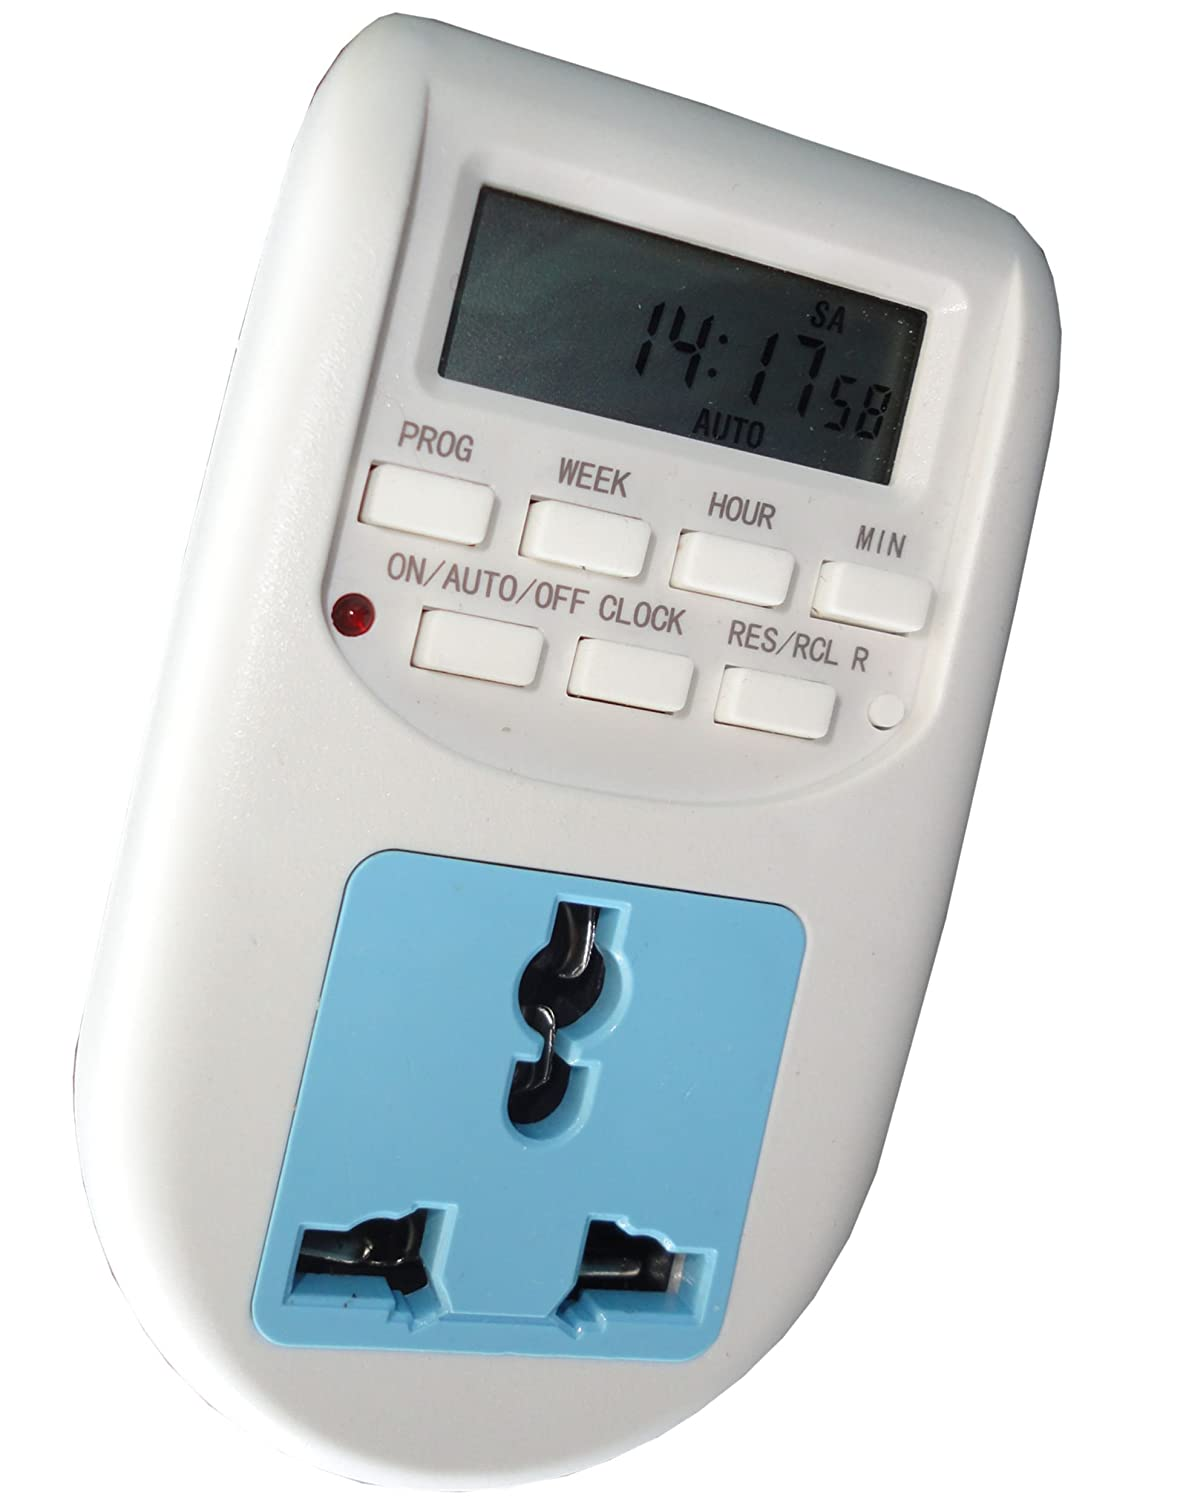 Buy Walnut Innovations Programmable Timer Switch Electronic Digital Timer  Online at Low Prices in India - Amazon.in